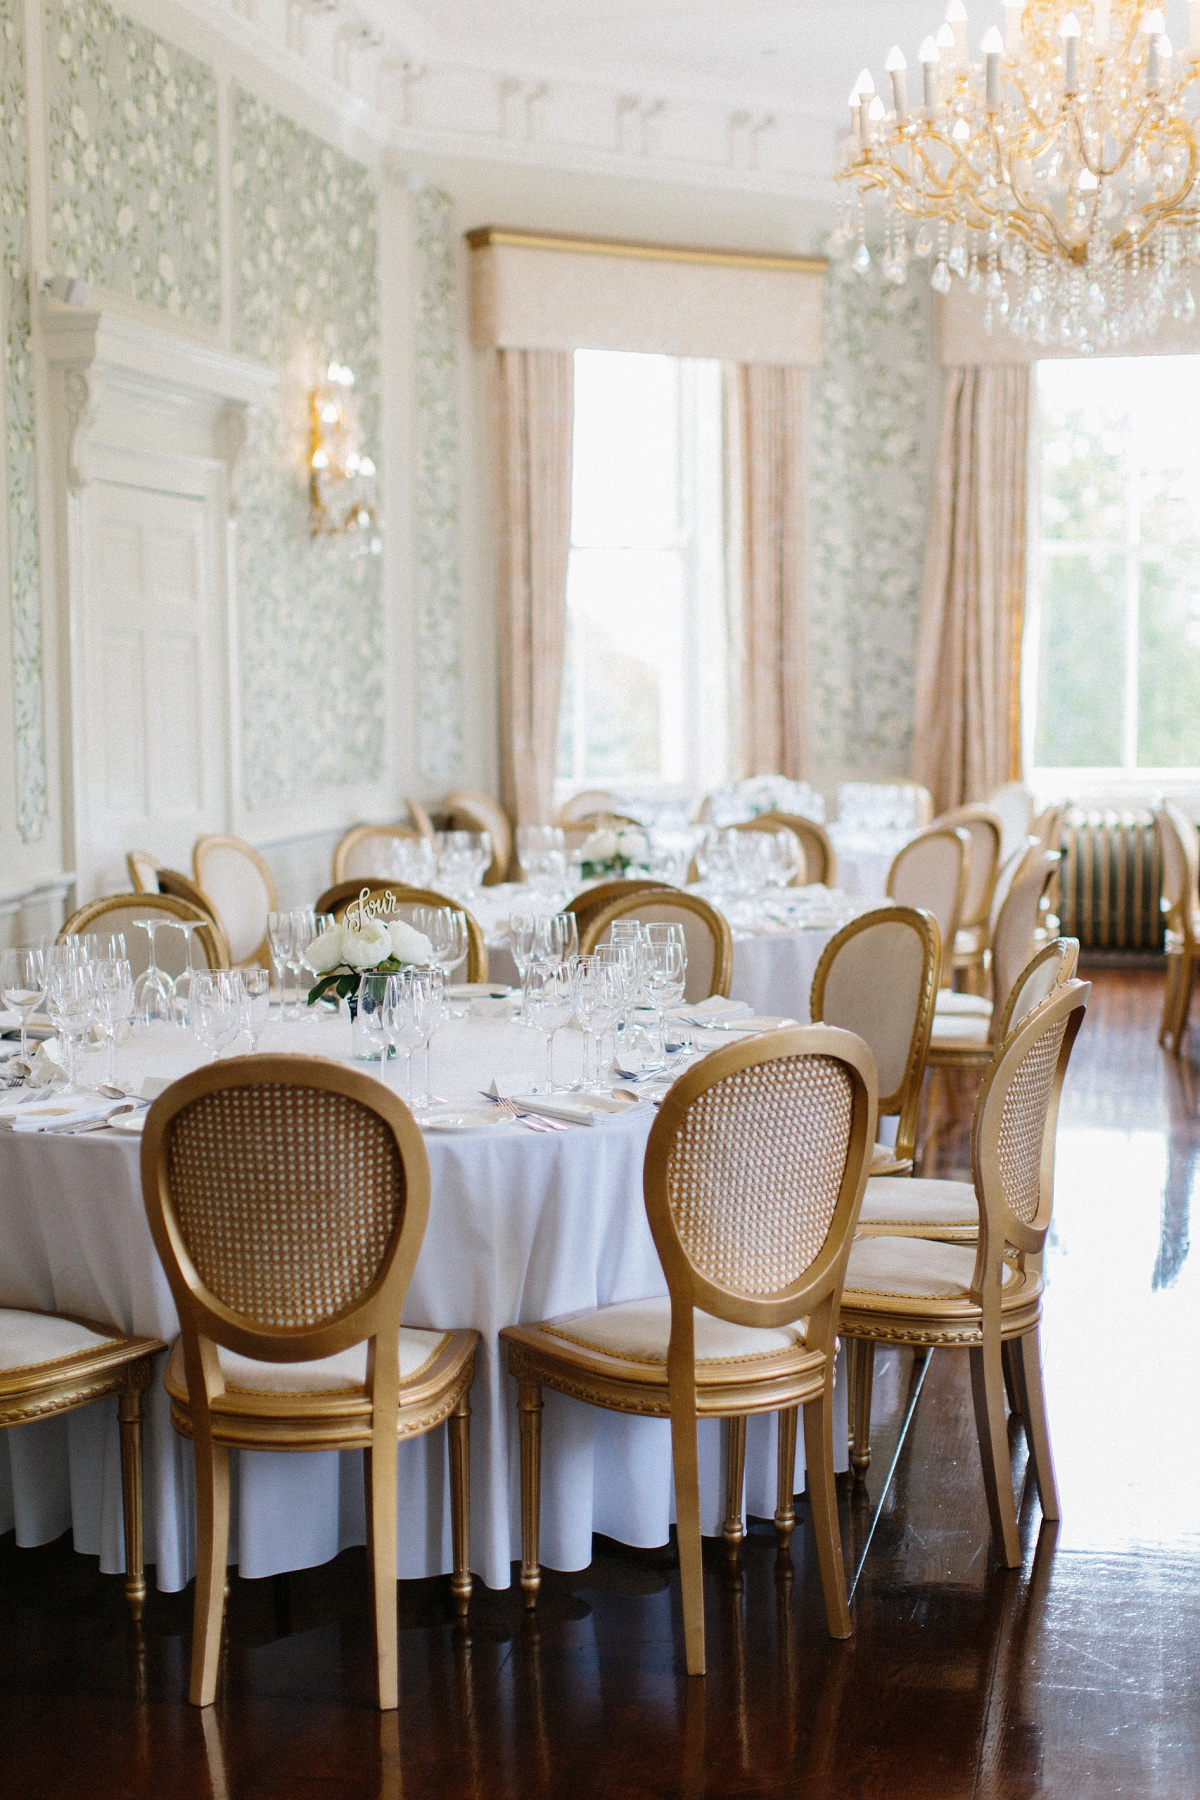 An Elegant Wedding at Lartington Hall (c) Melissa Beattie (5)